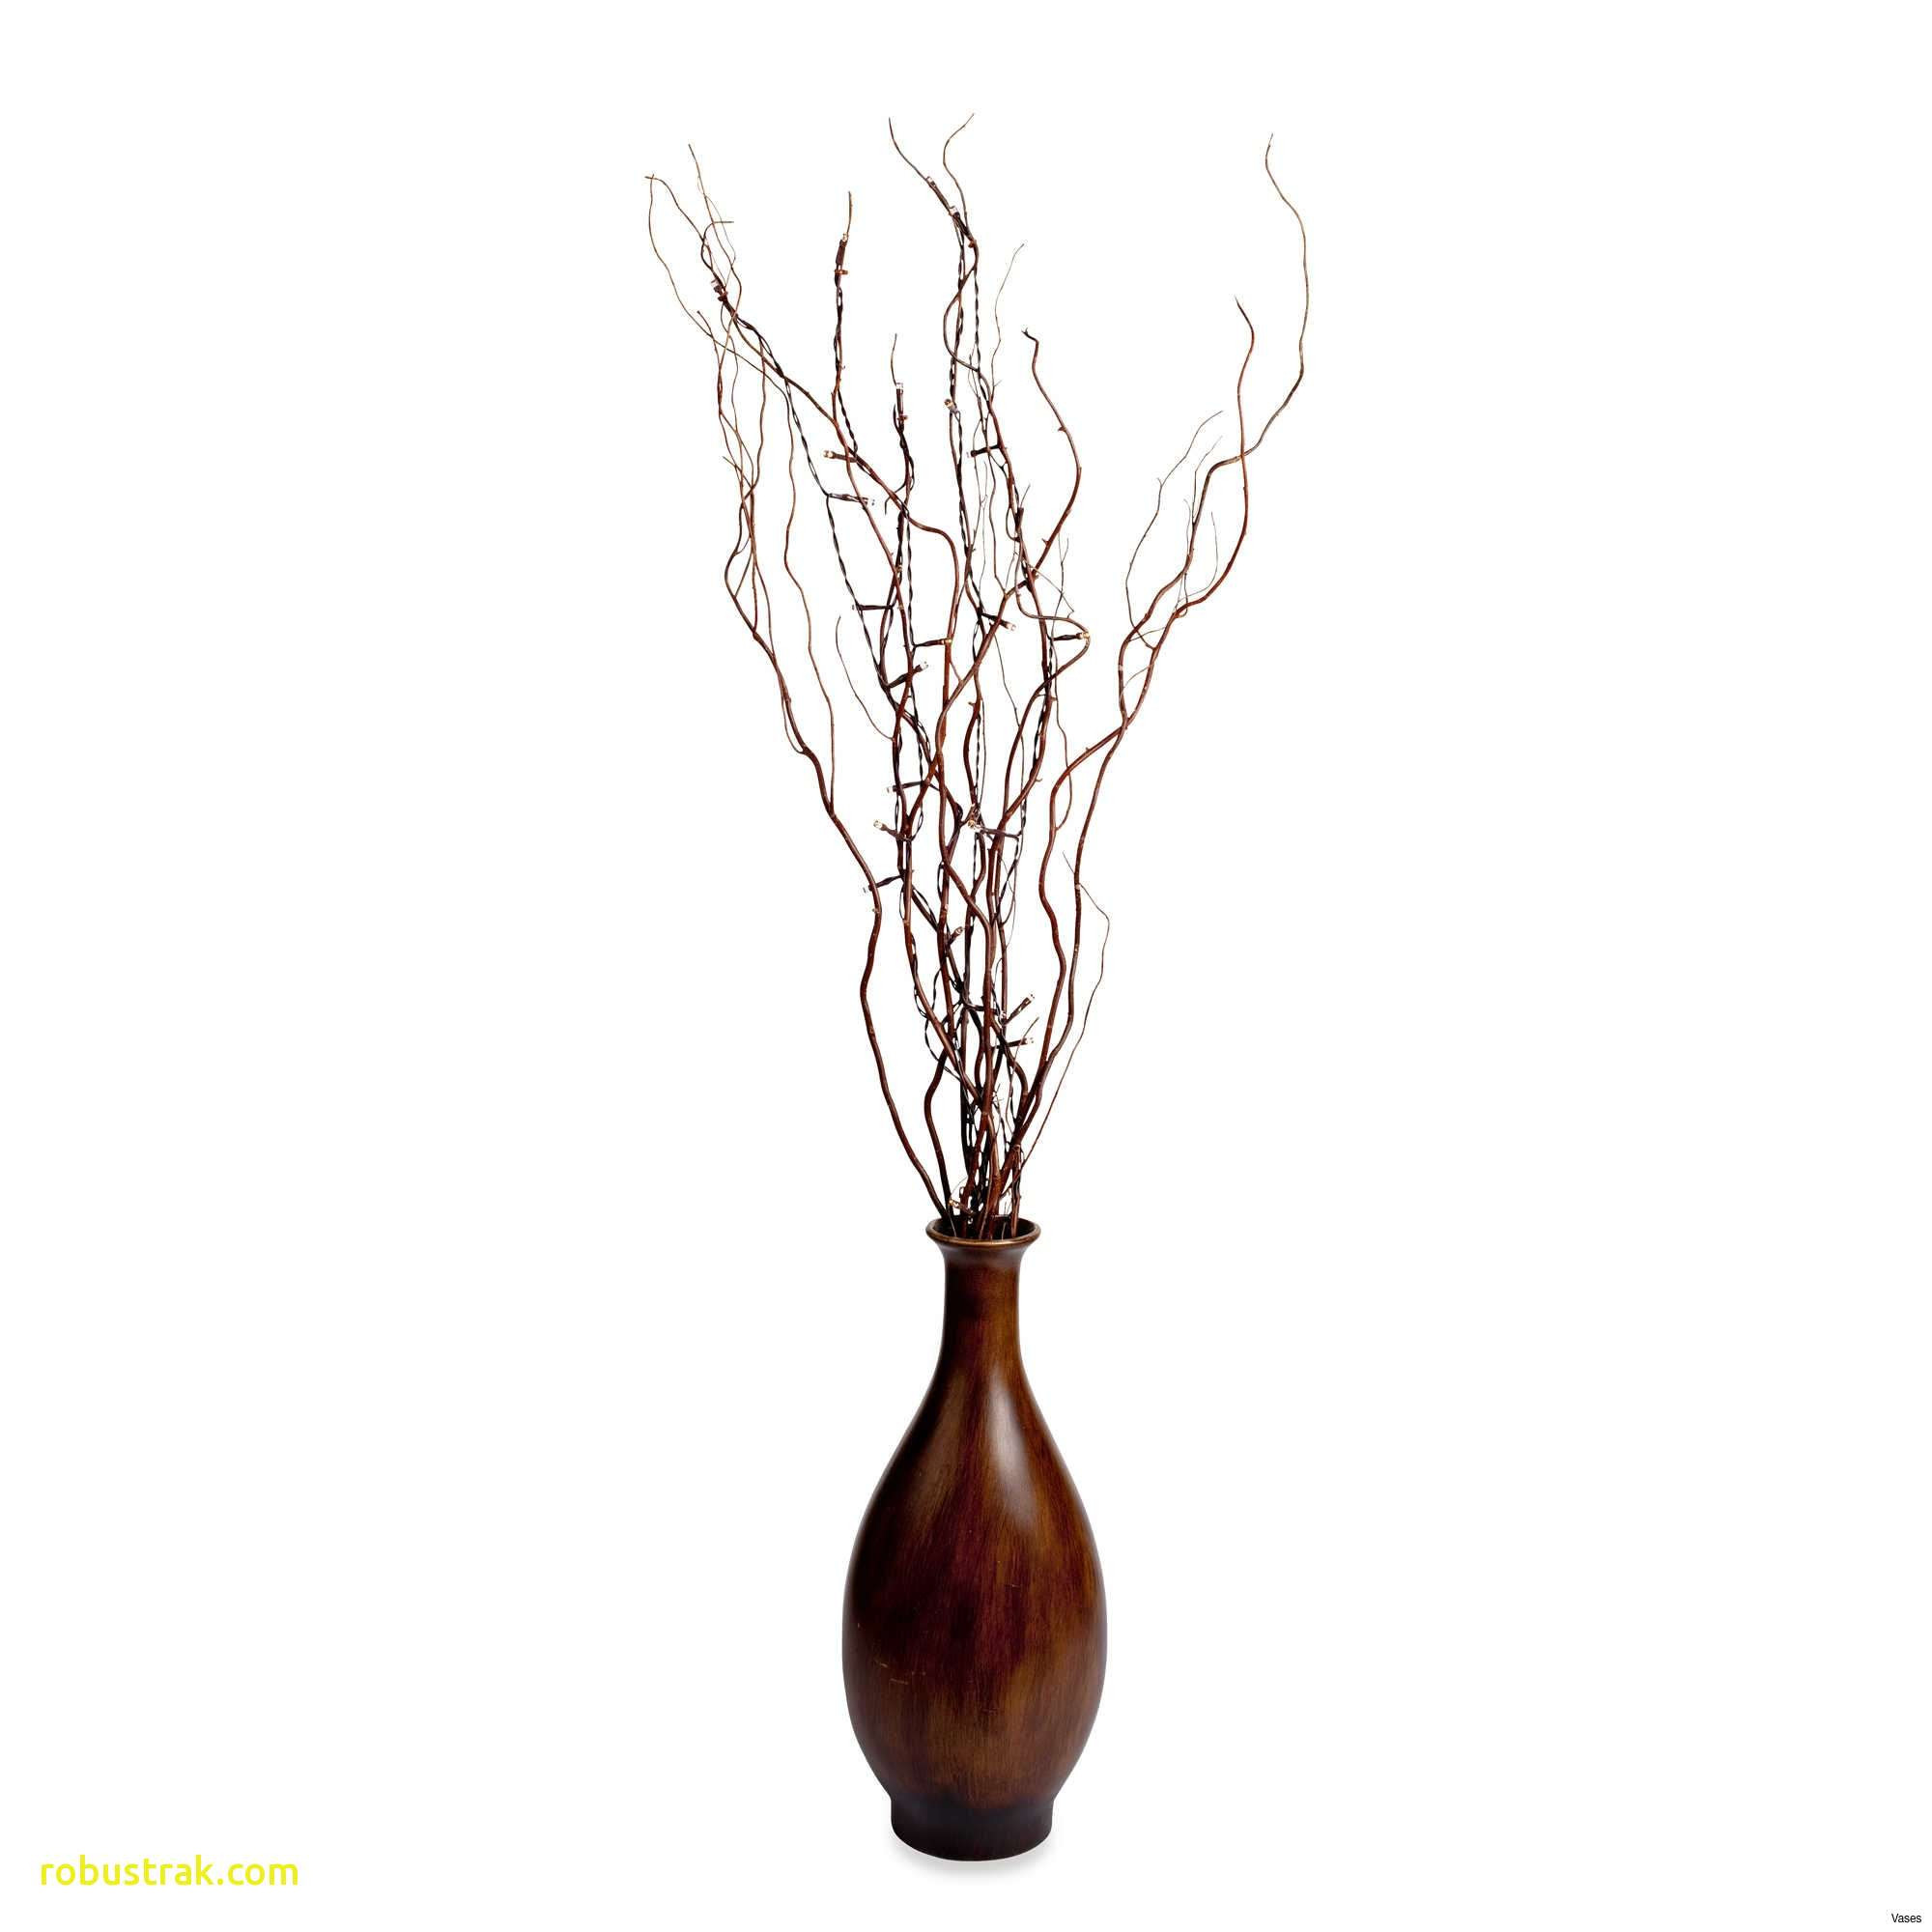 bamboo vase ideas of the wood maker page 5 wood wallpaper with regard to inspirational decor sticks in a vase concepts of bamboo wood flooring